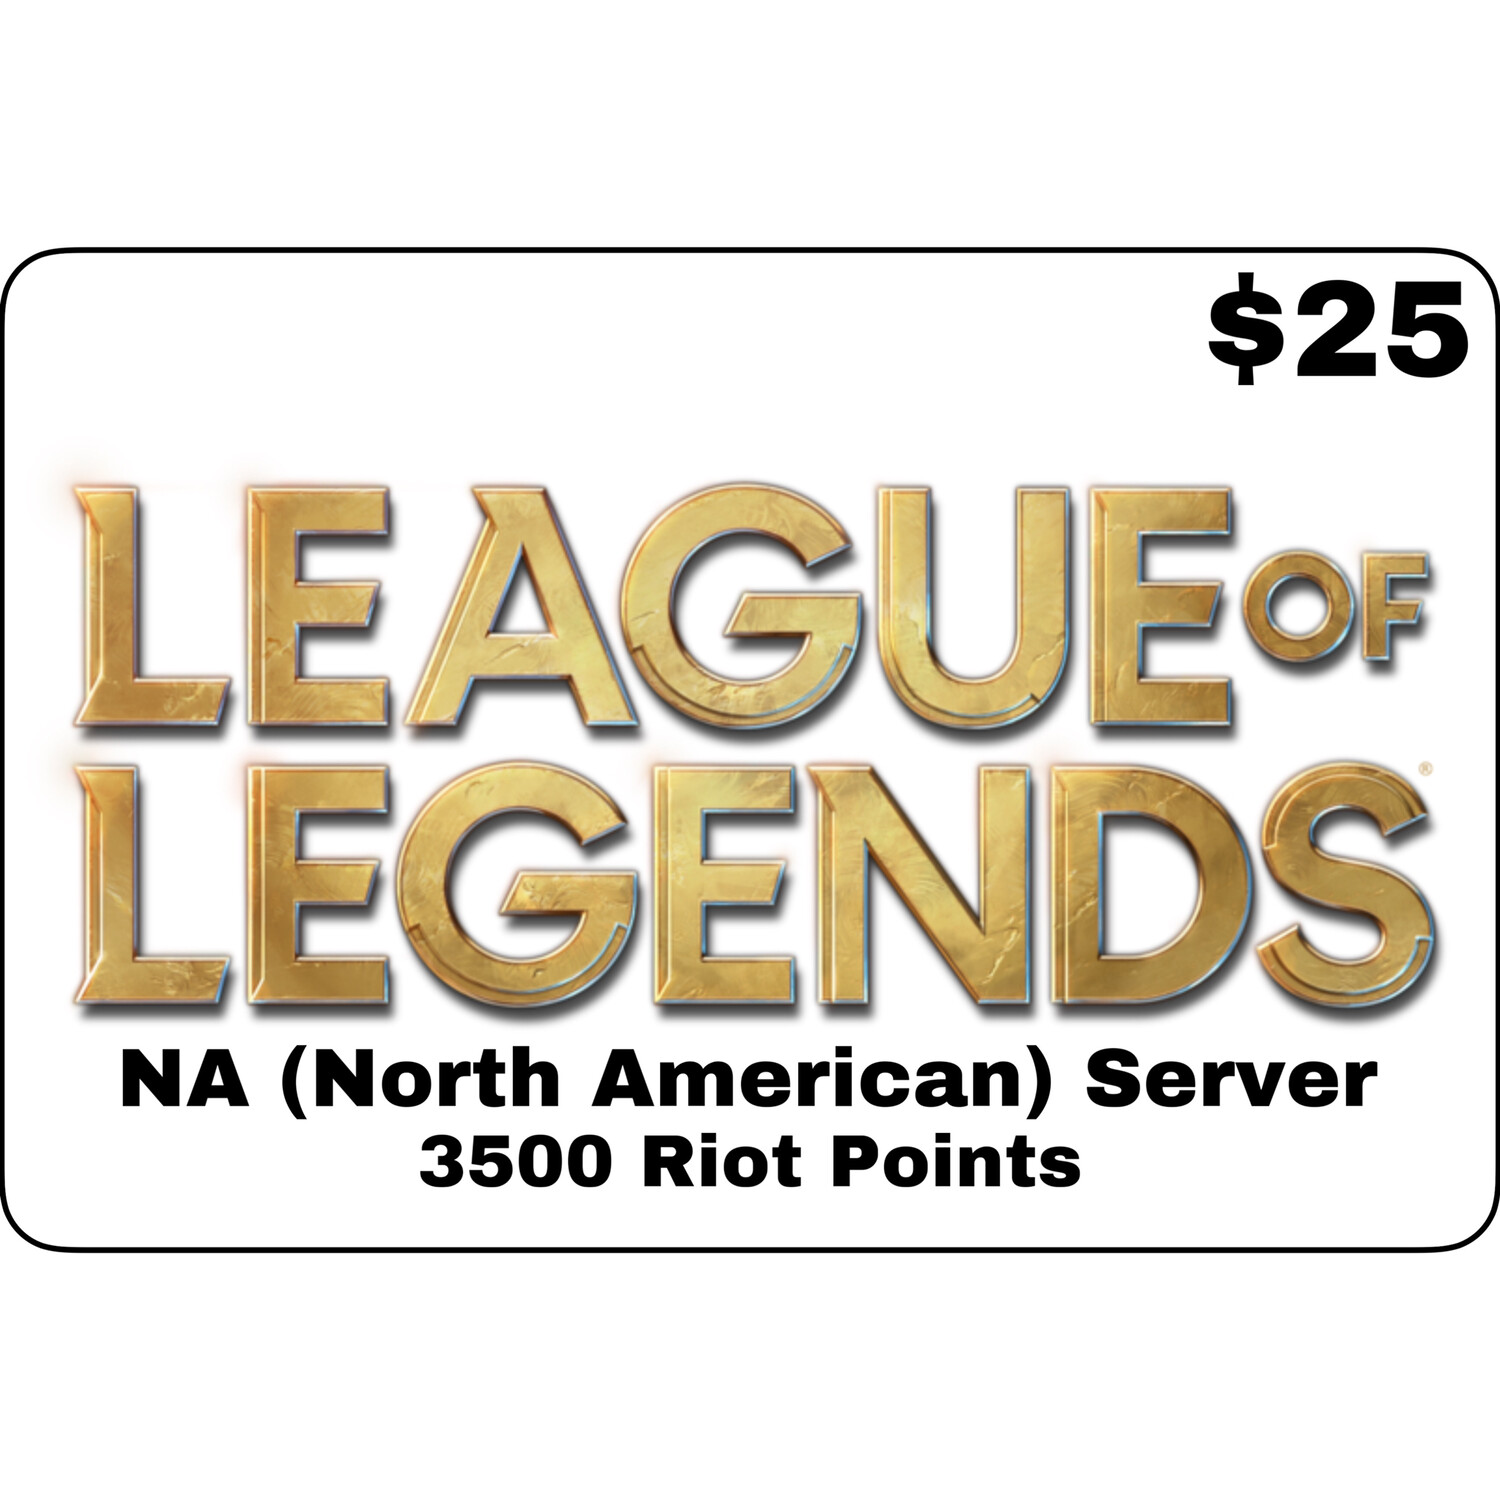 League of Legends $25 (NA Server) 3500 Riot Points